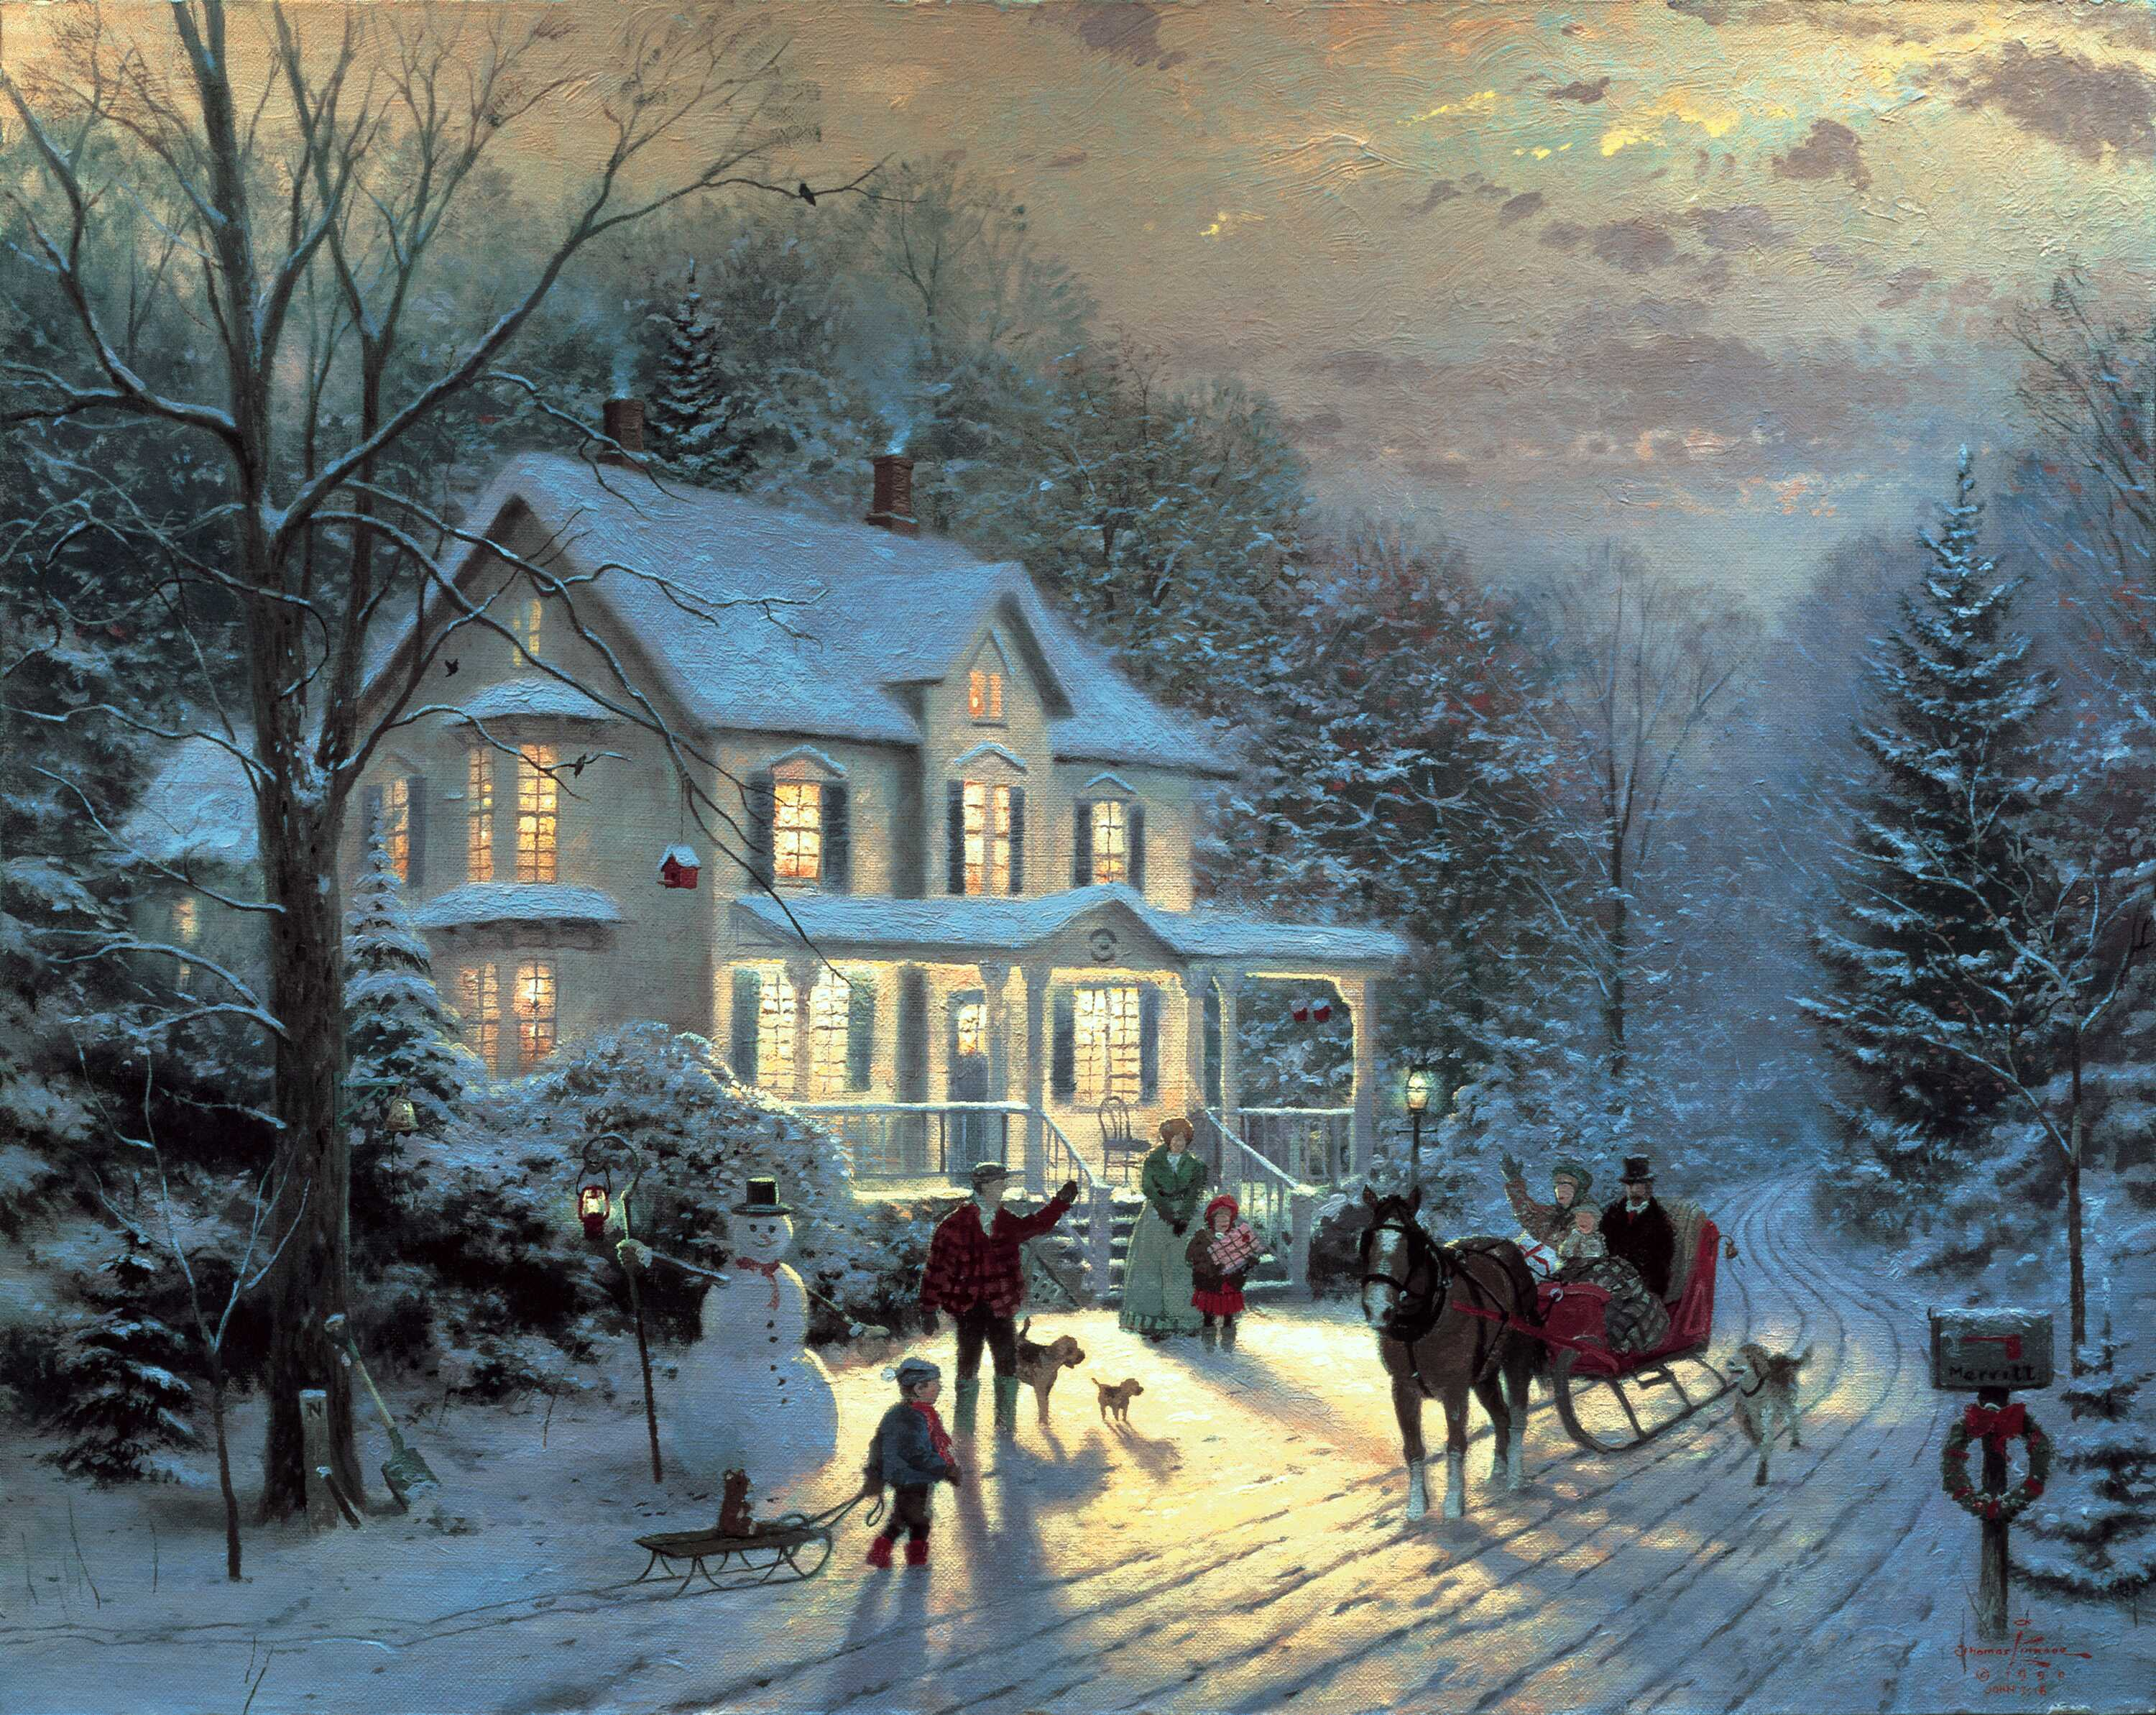 Thomas Kinkade Christmas.Thomas Kinkade Christmas Christmas Photo 40842002 Fanpop